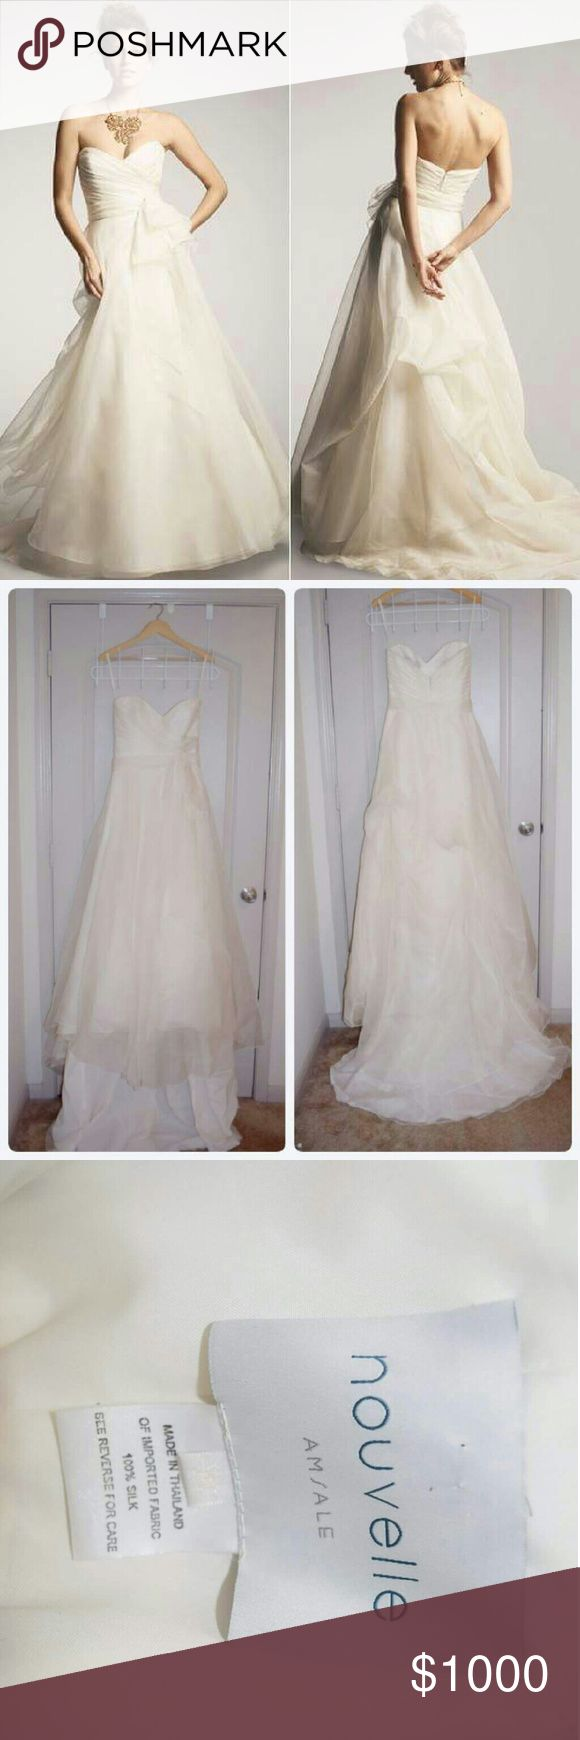 Amsale Wedding Dress Nouvelle Amsale Wedding gown Color: Ivory Size 10 (bride is normally a 2 or 4) Currently selling at Nordstrom for full price $1800 Bride specs: weight 118, height 5'1'', wore 4 inch heels, bust 34C There is a bustle for the train so need to get a reception dress. Dry cleaned the day after the wedding. Amsale Dresses Wedding